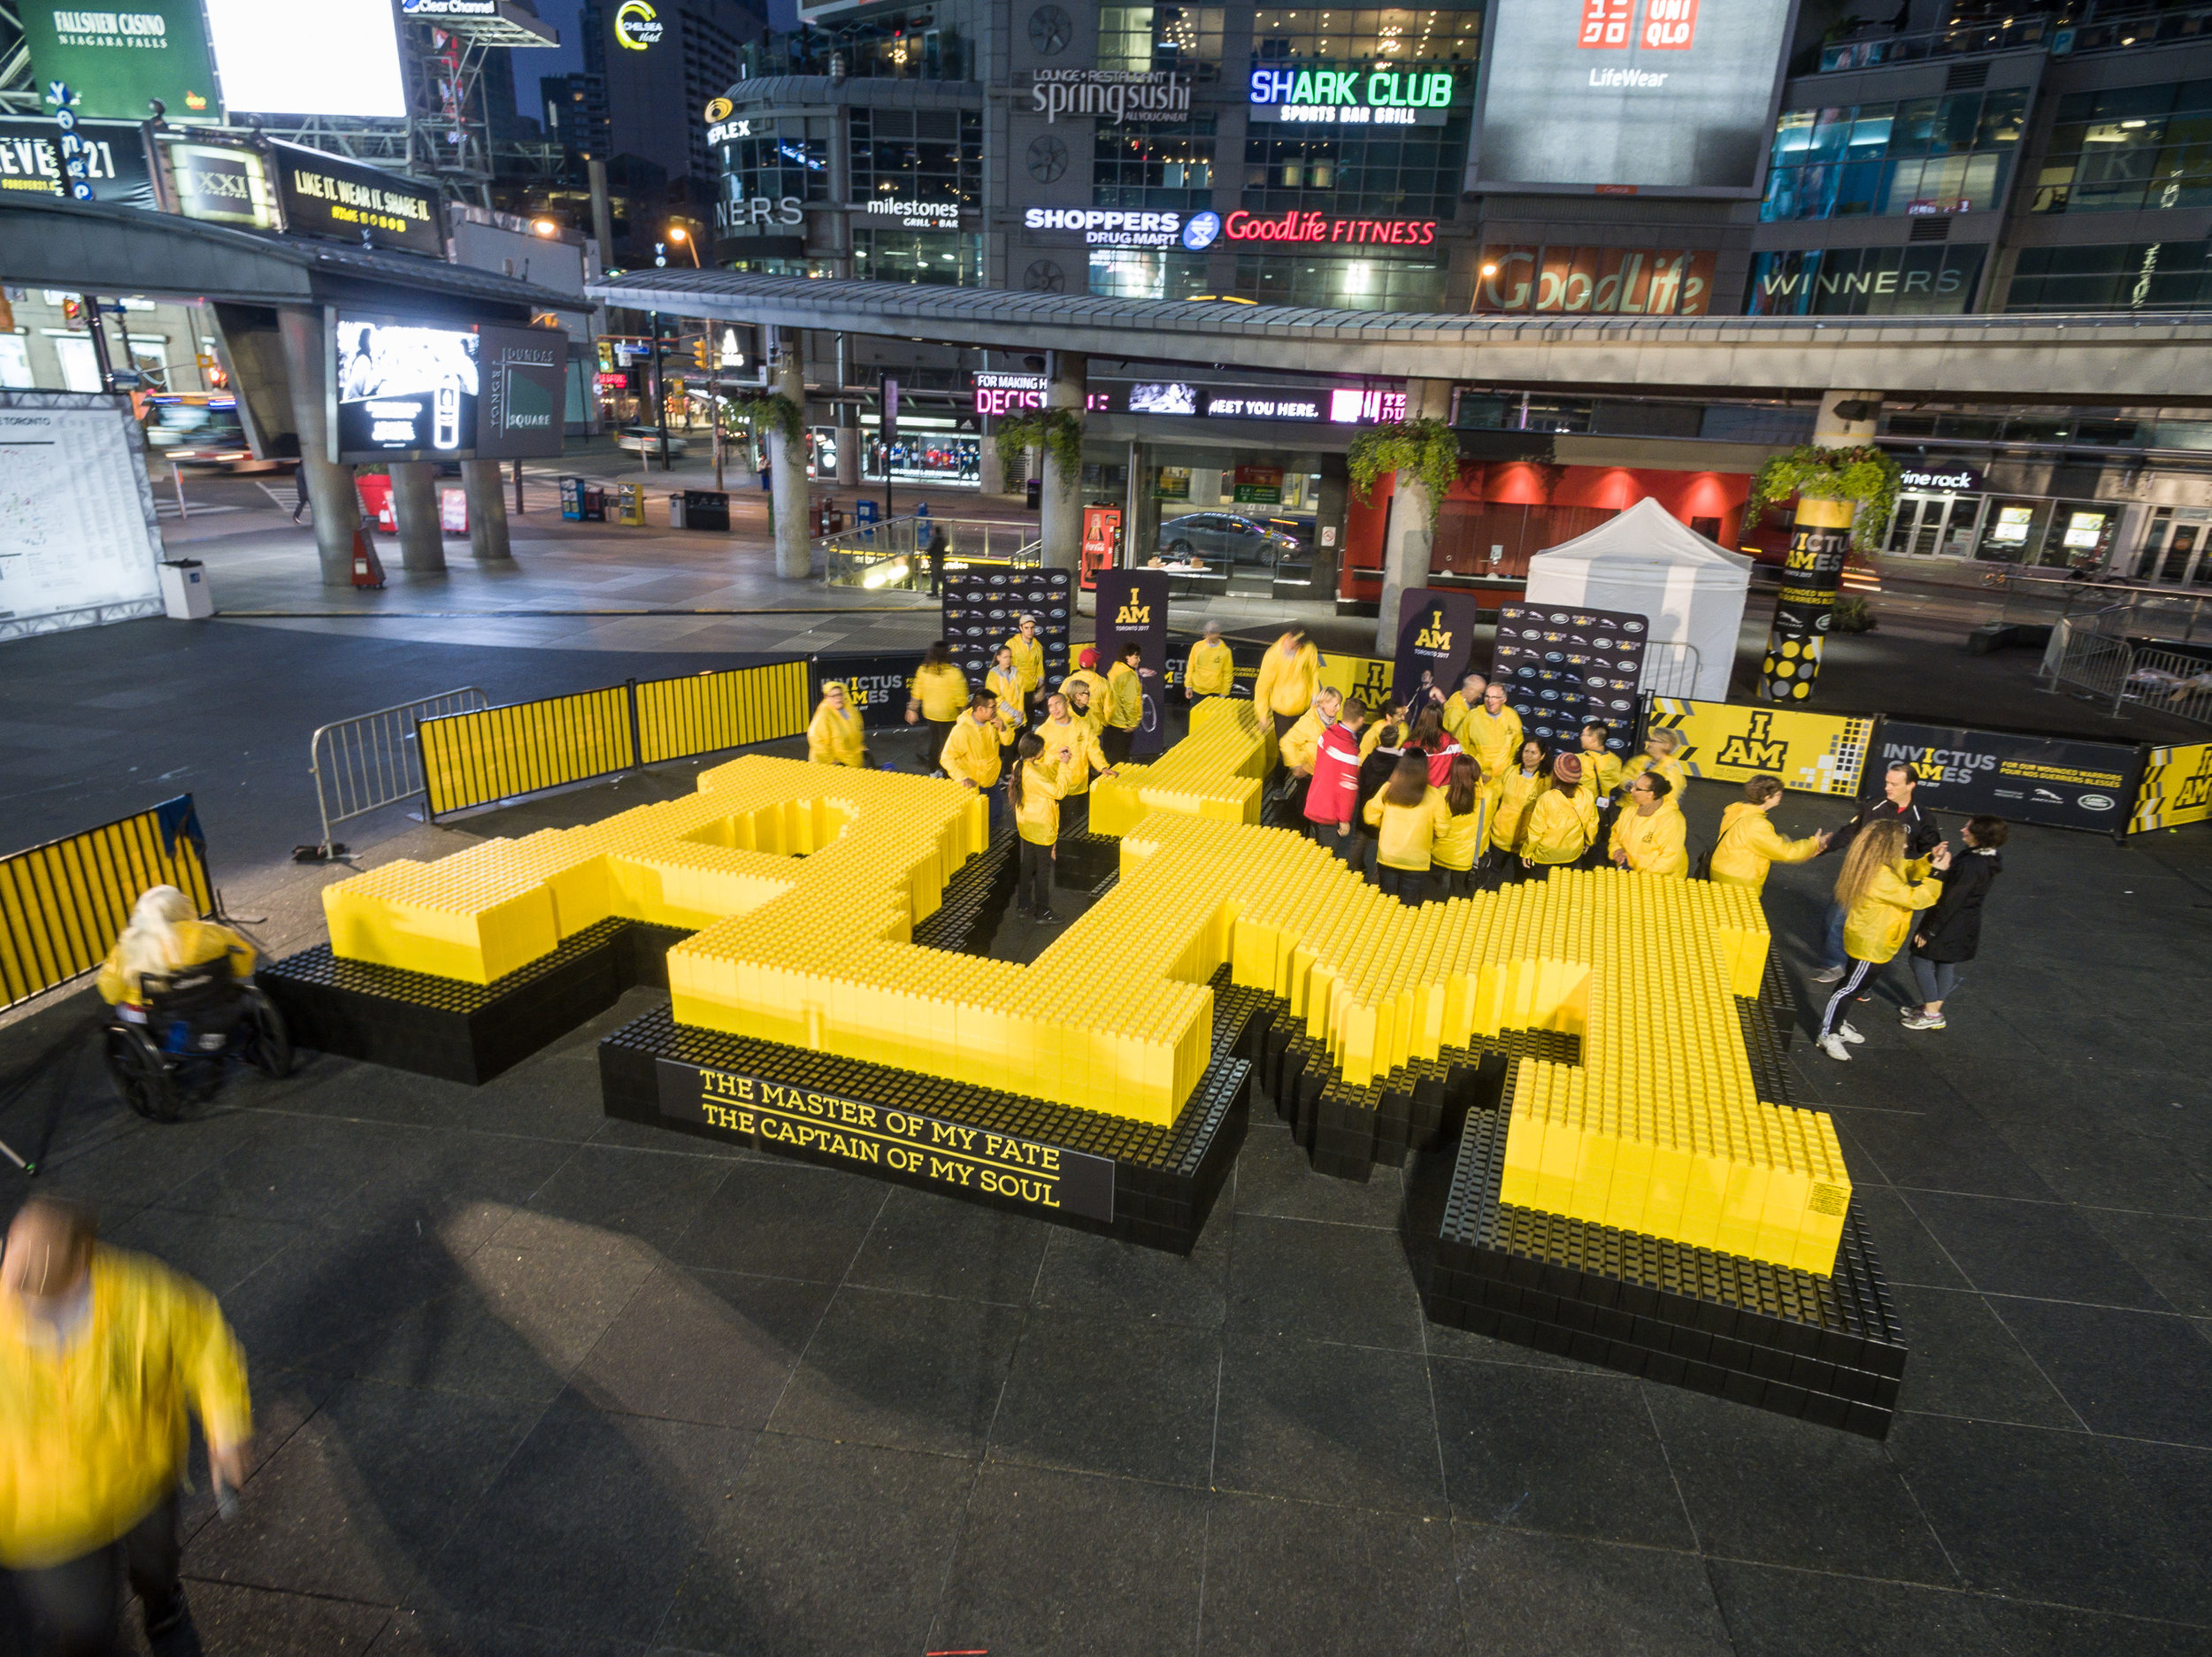 Build iconic structures and sculptures, with audience participation.  This event, for Invictus Games had thousands of shares on social media and a tremendous impact.